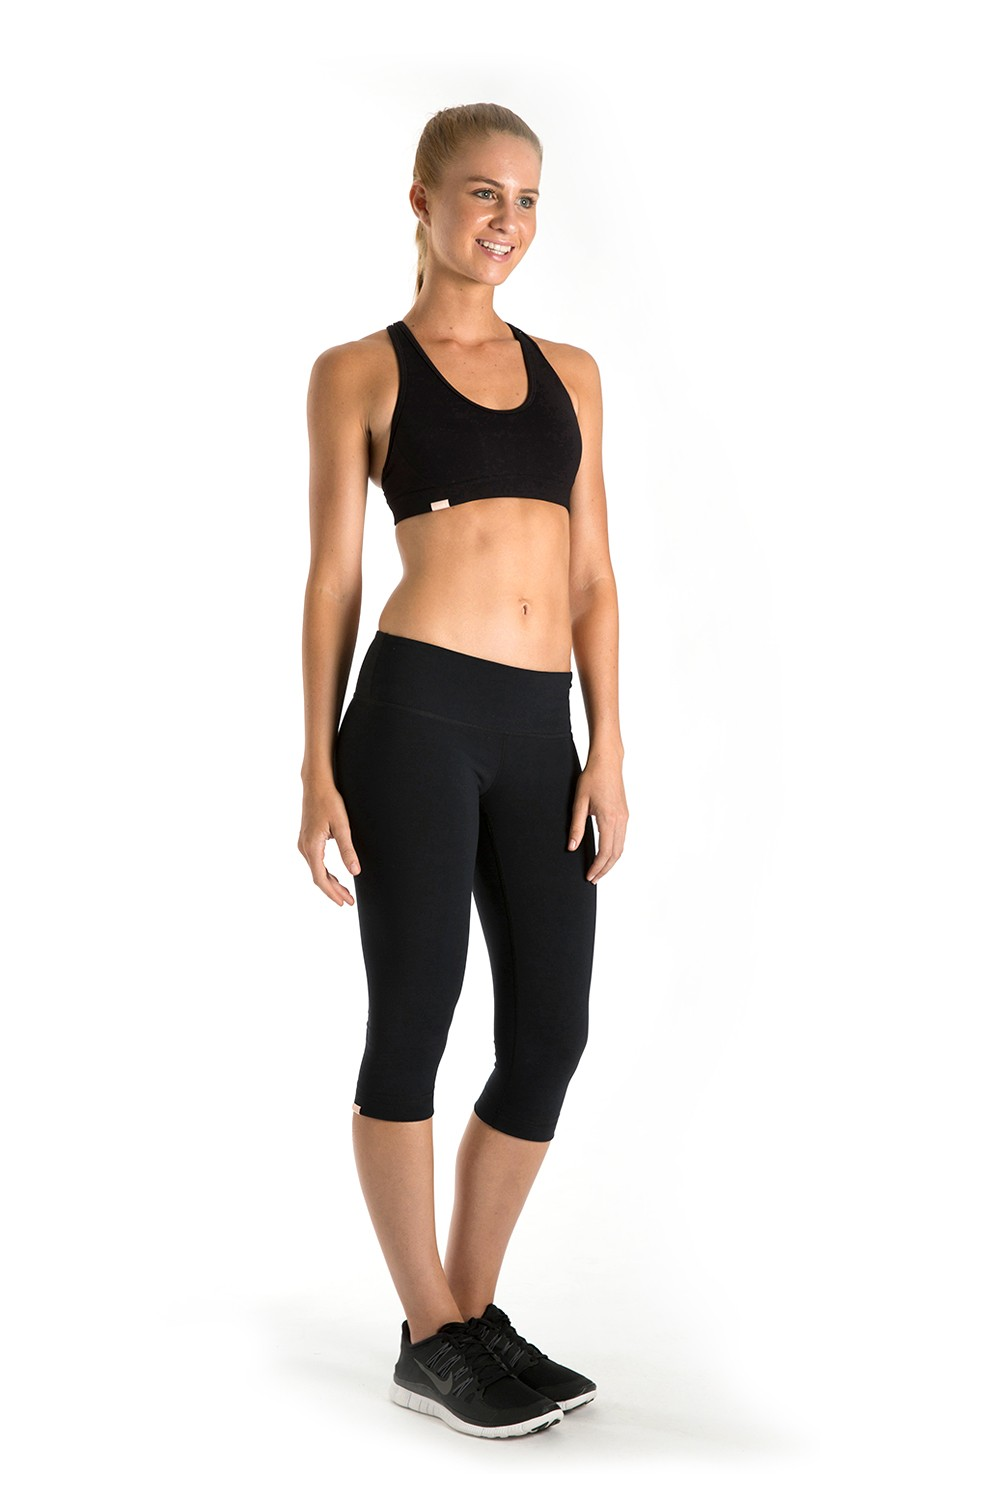 1/2 Regular Rise Leggings Women's Bottoms